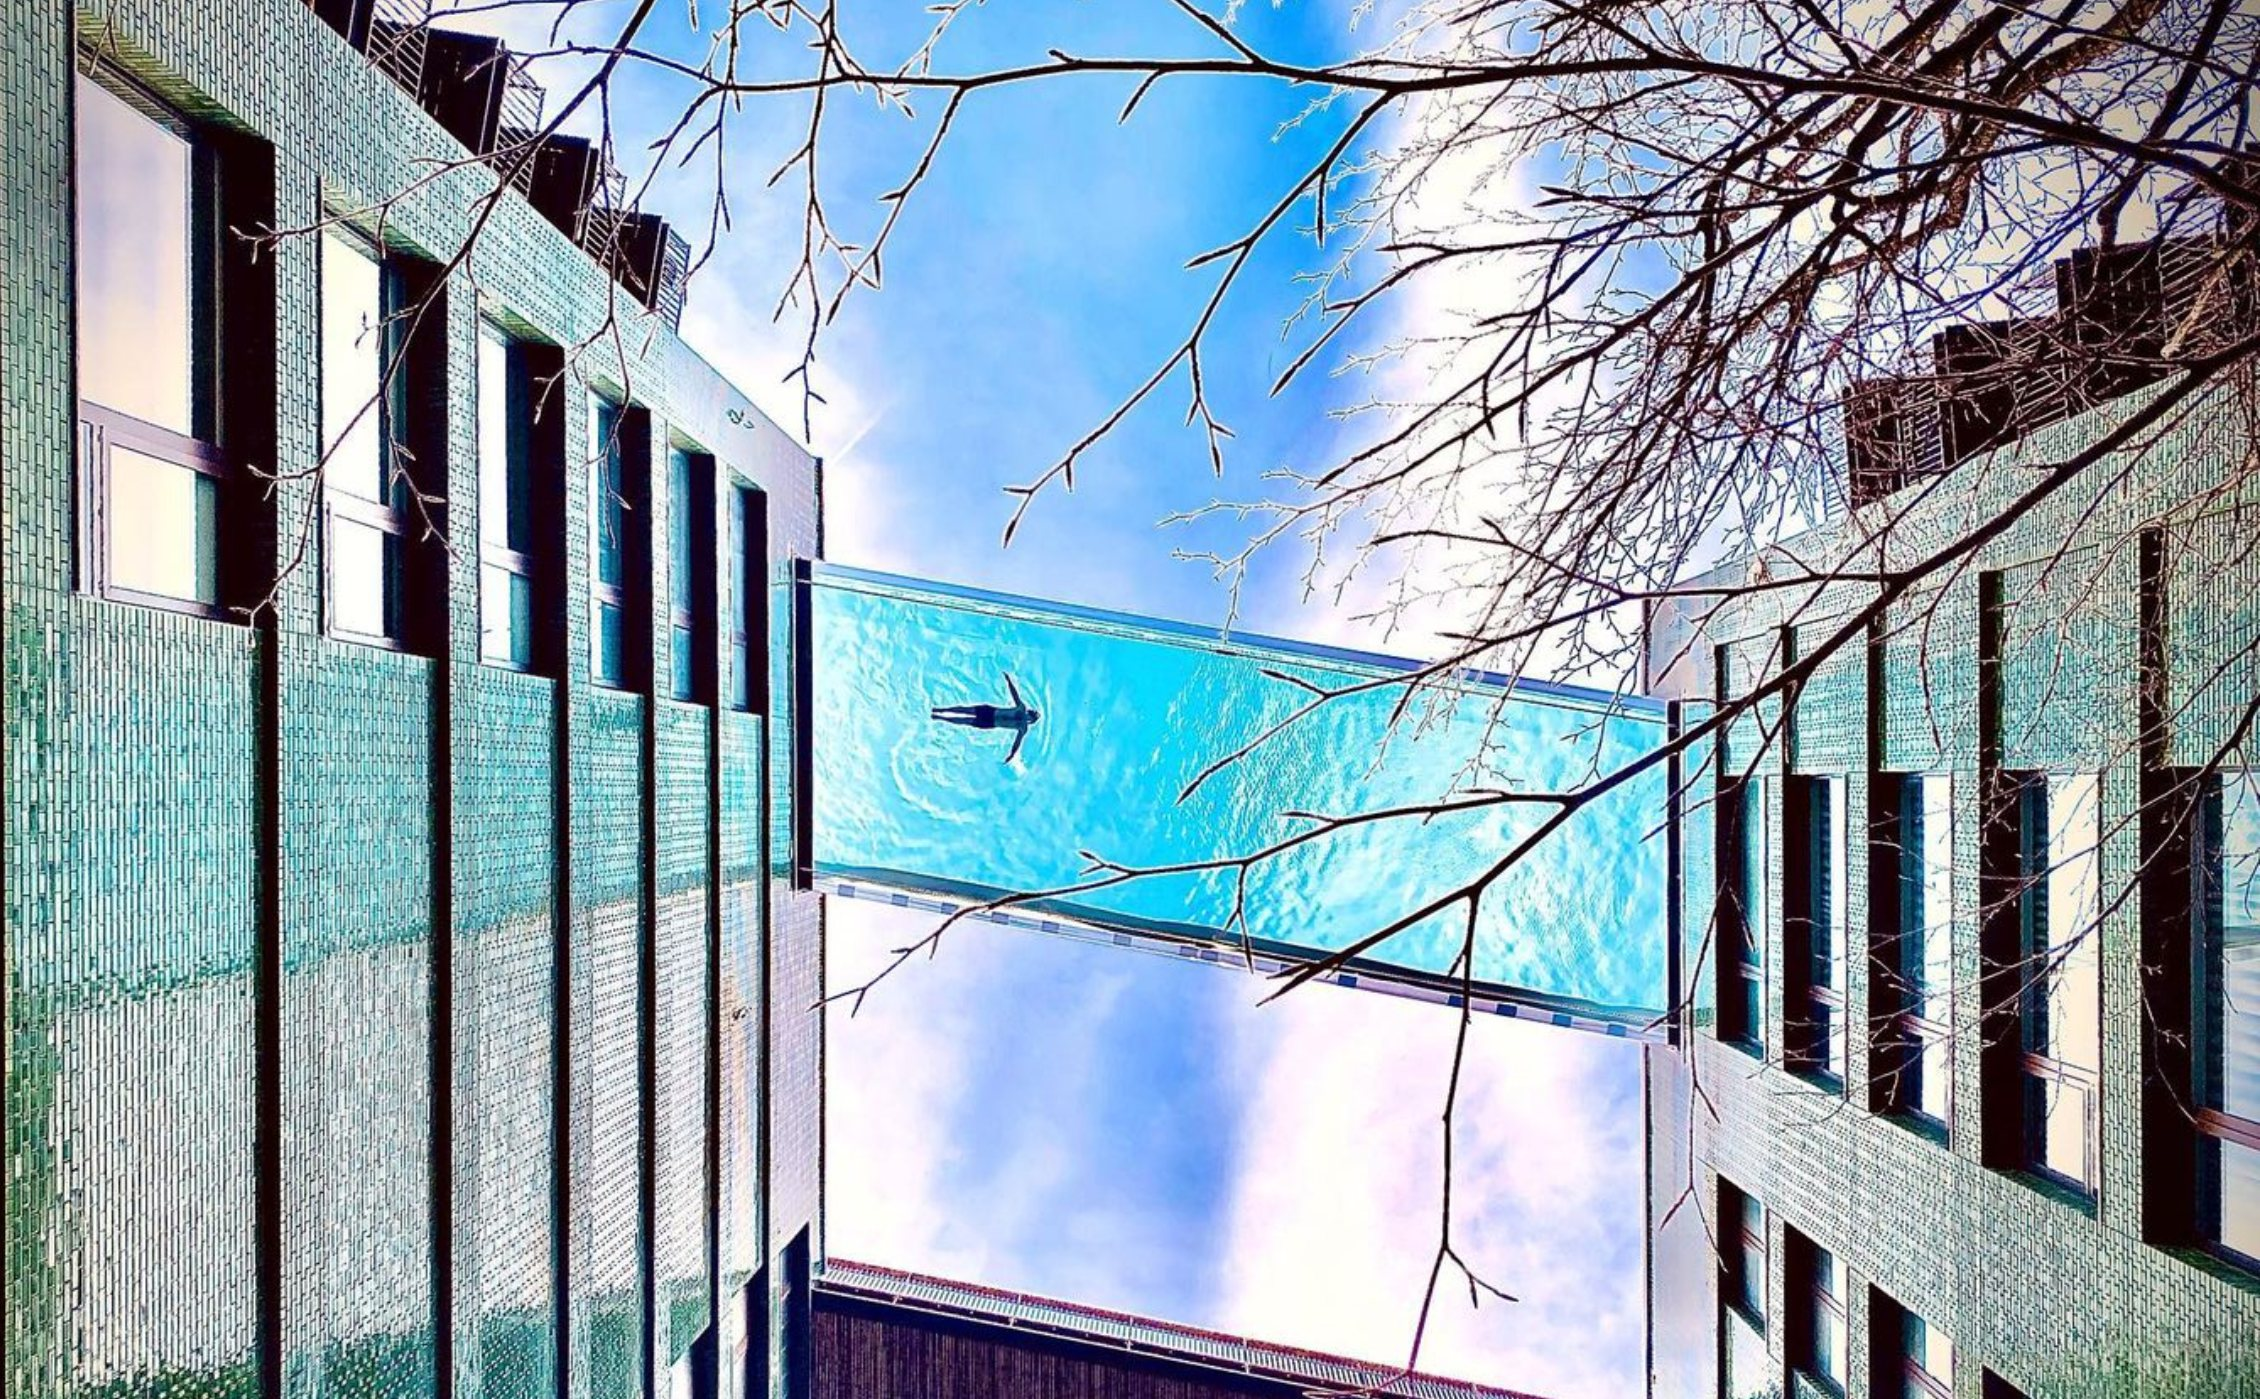 The Sky Pool, a floating swimming pool joining two buildings